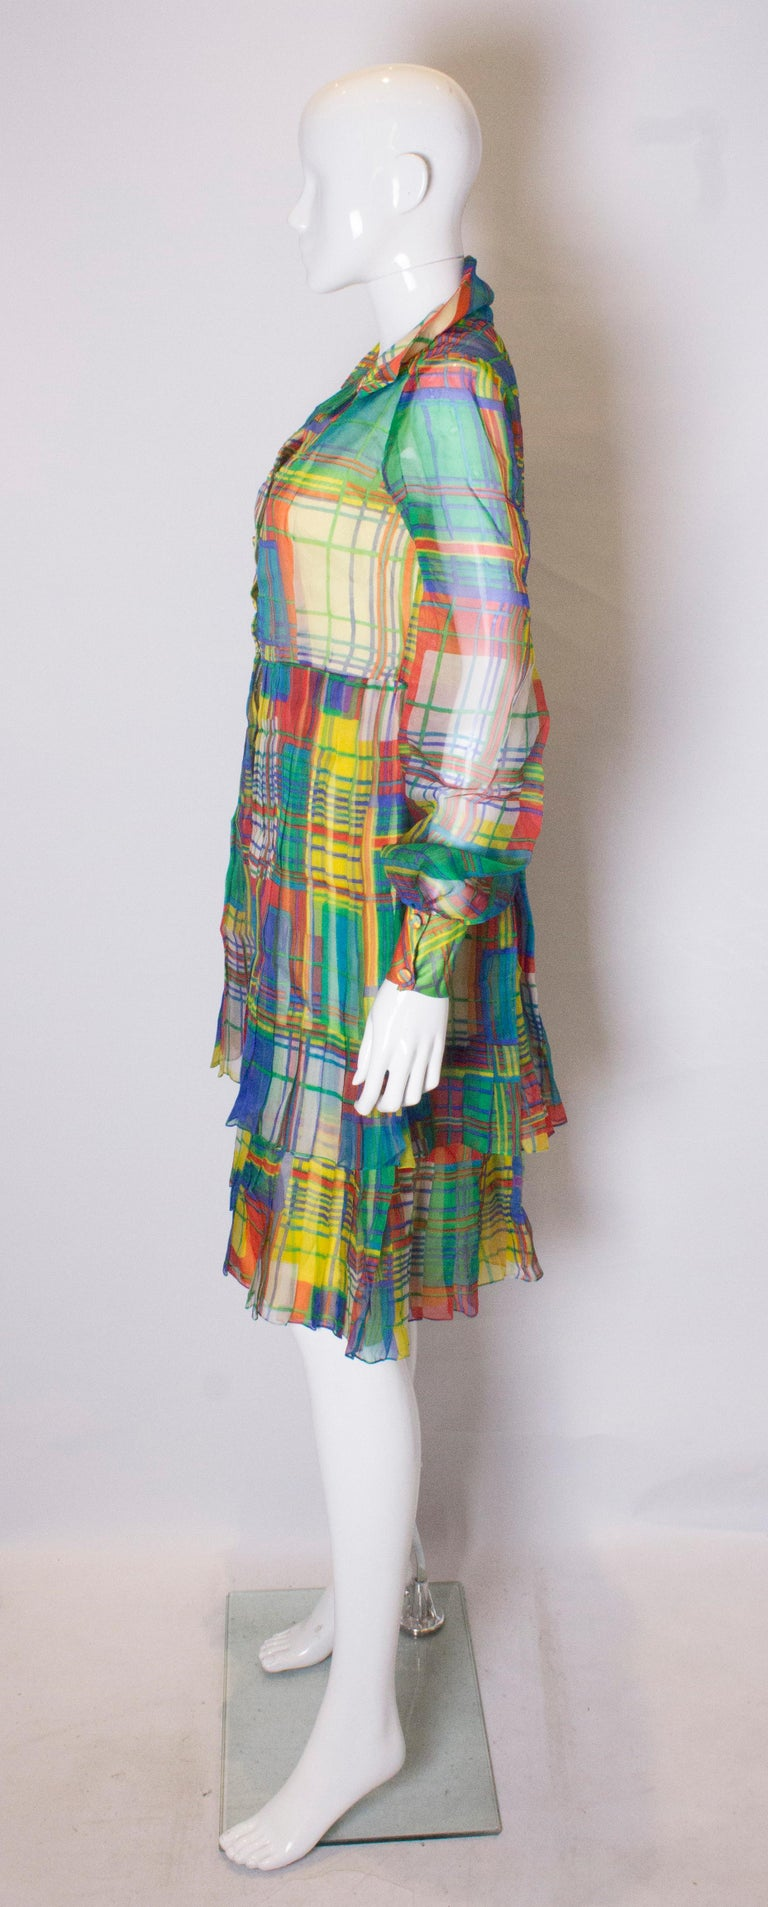 Women's Vintage Silk Chiffon Dress by Nettie Vogue London For Sale